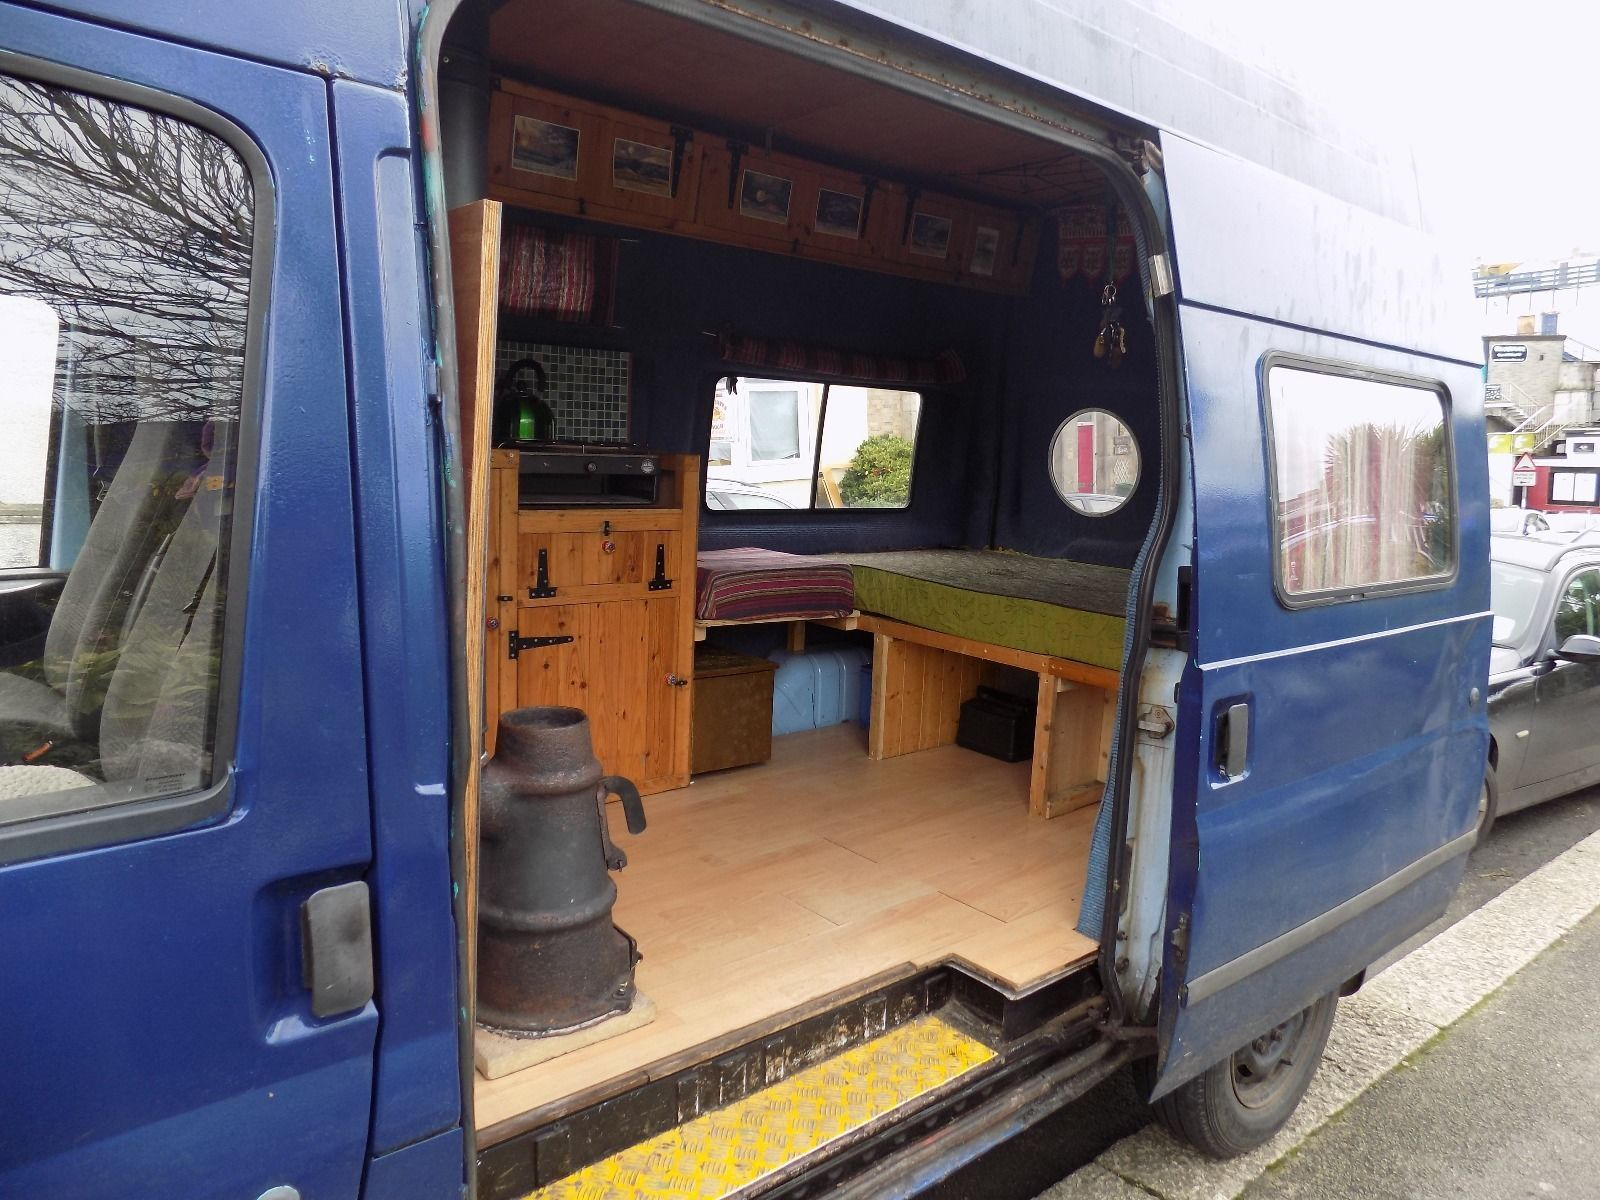 Ford transit camper conversion hippy festival surf bus in cars motorcycles vehicles campers caravans motorhomes campervans motorhomes ebay